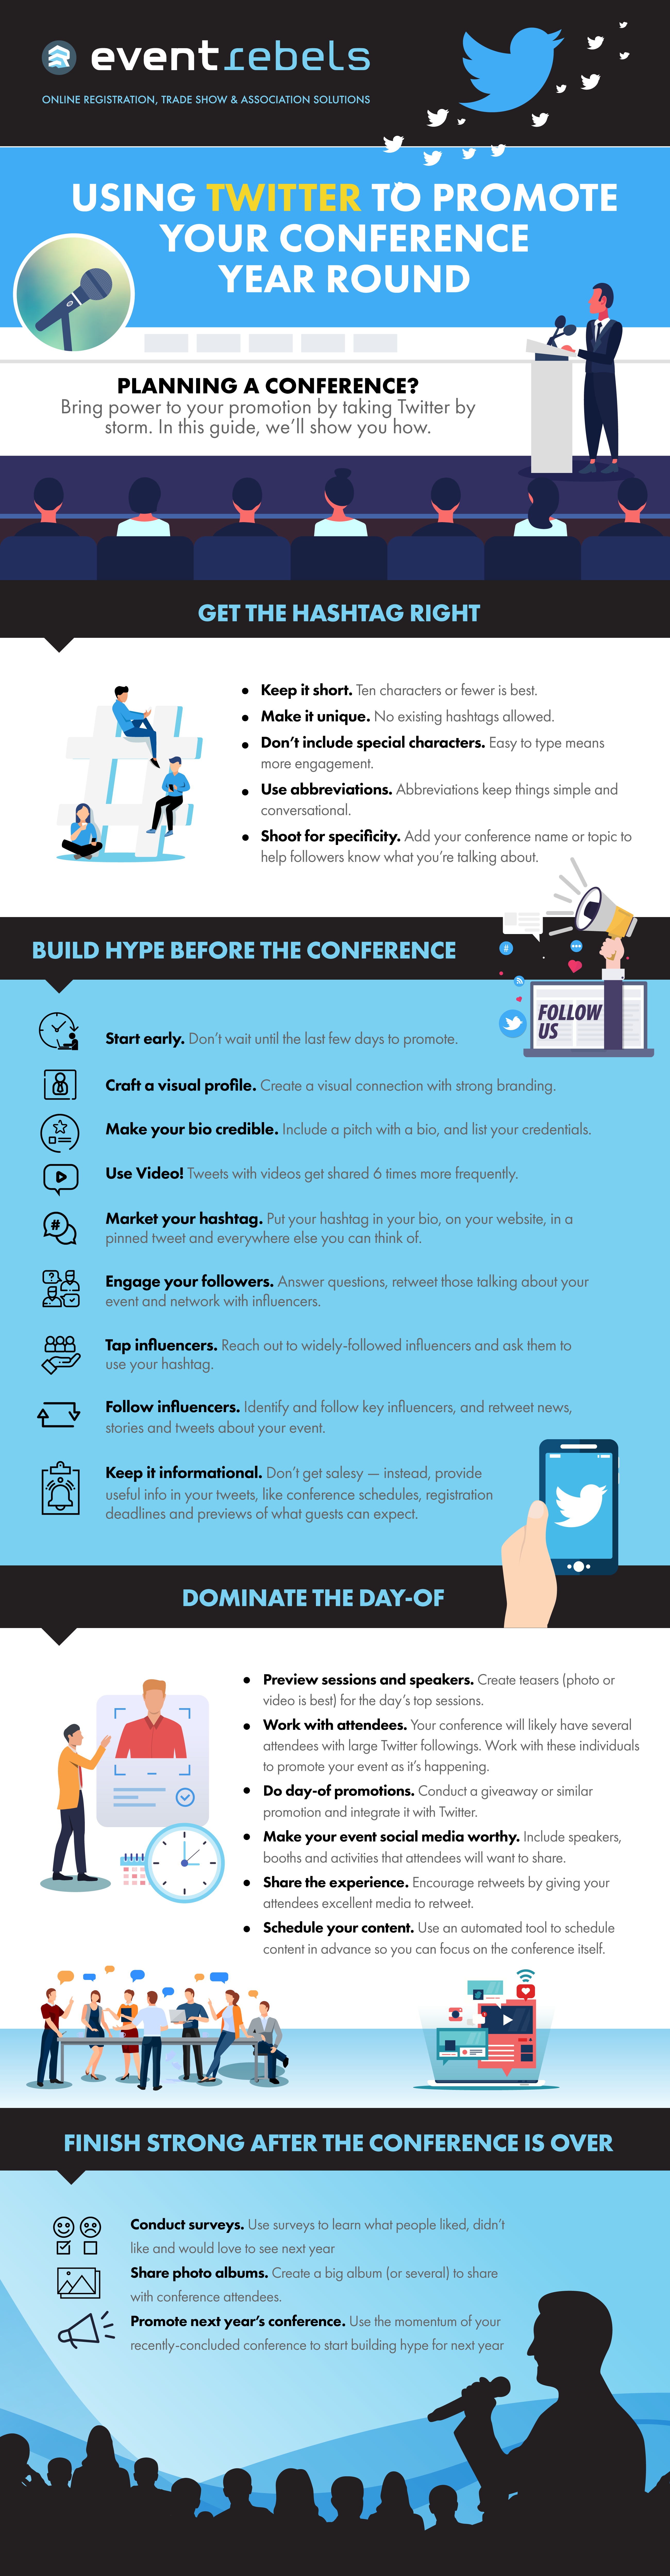 Using Twitter to Promote Your Conference Year Round